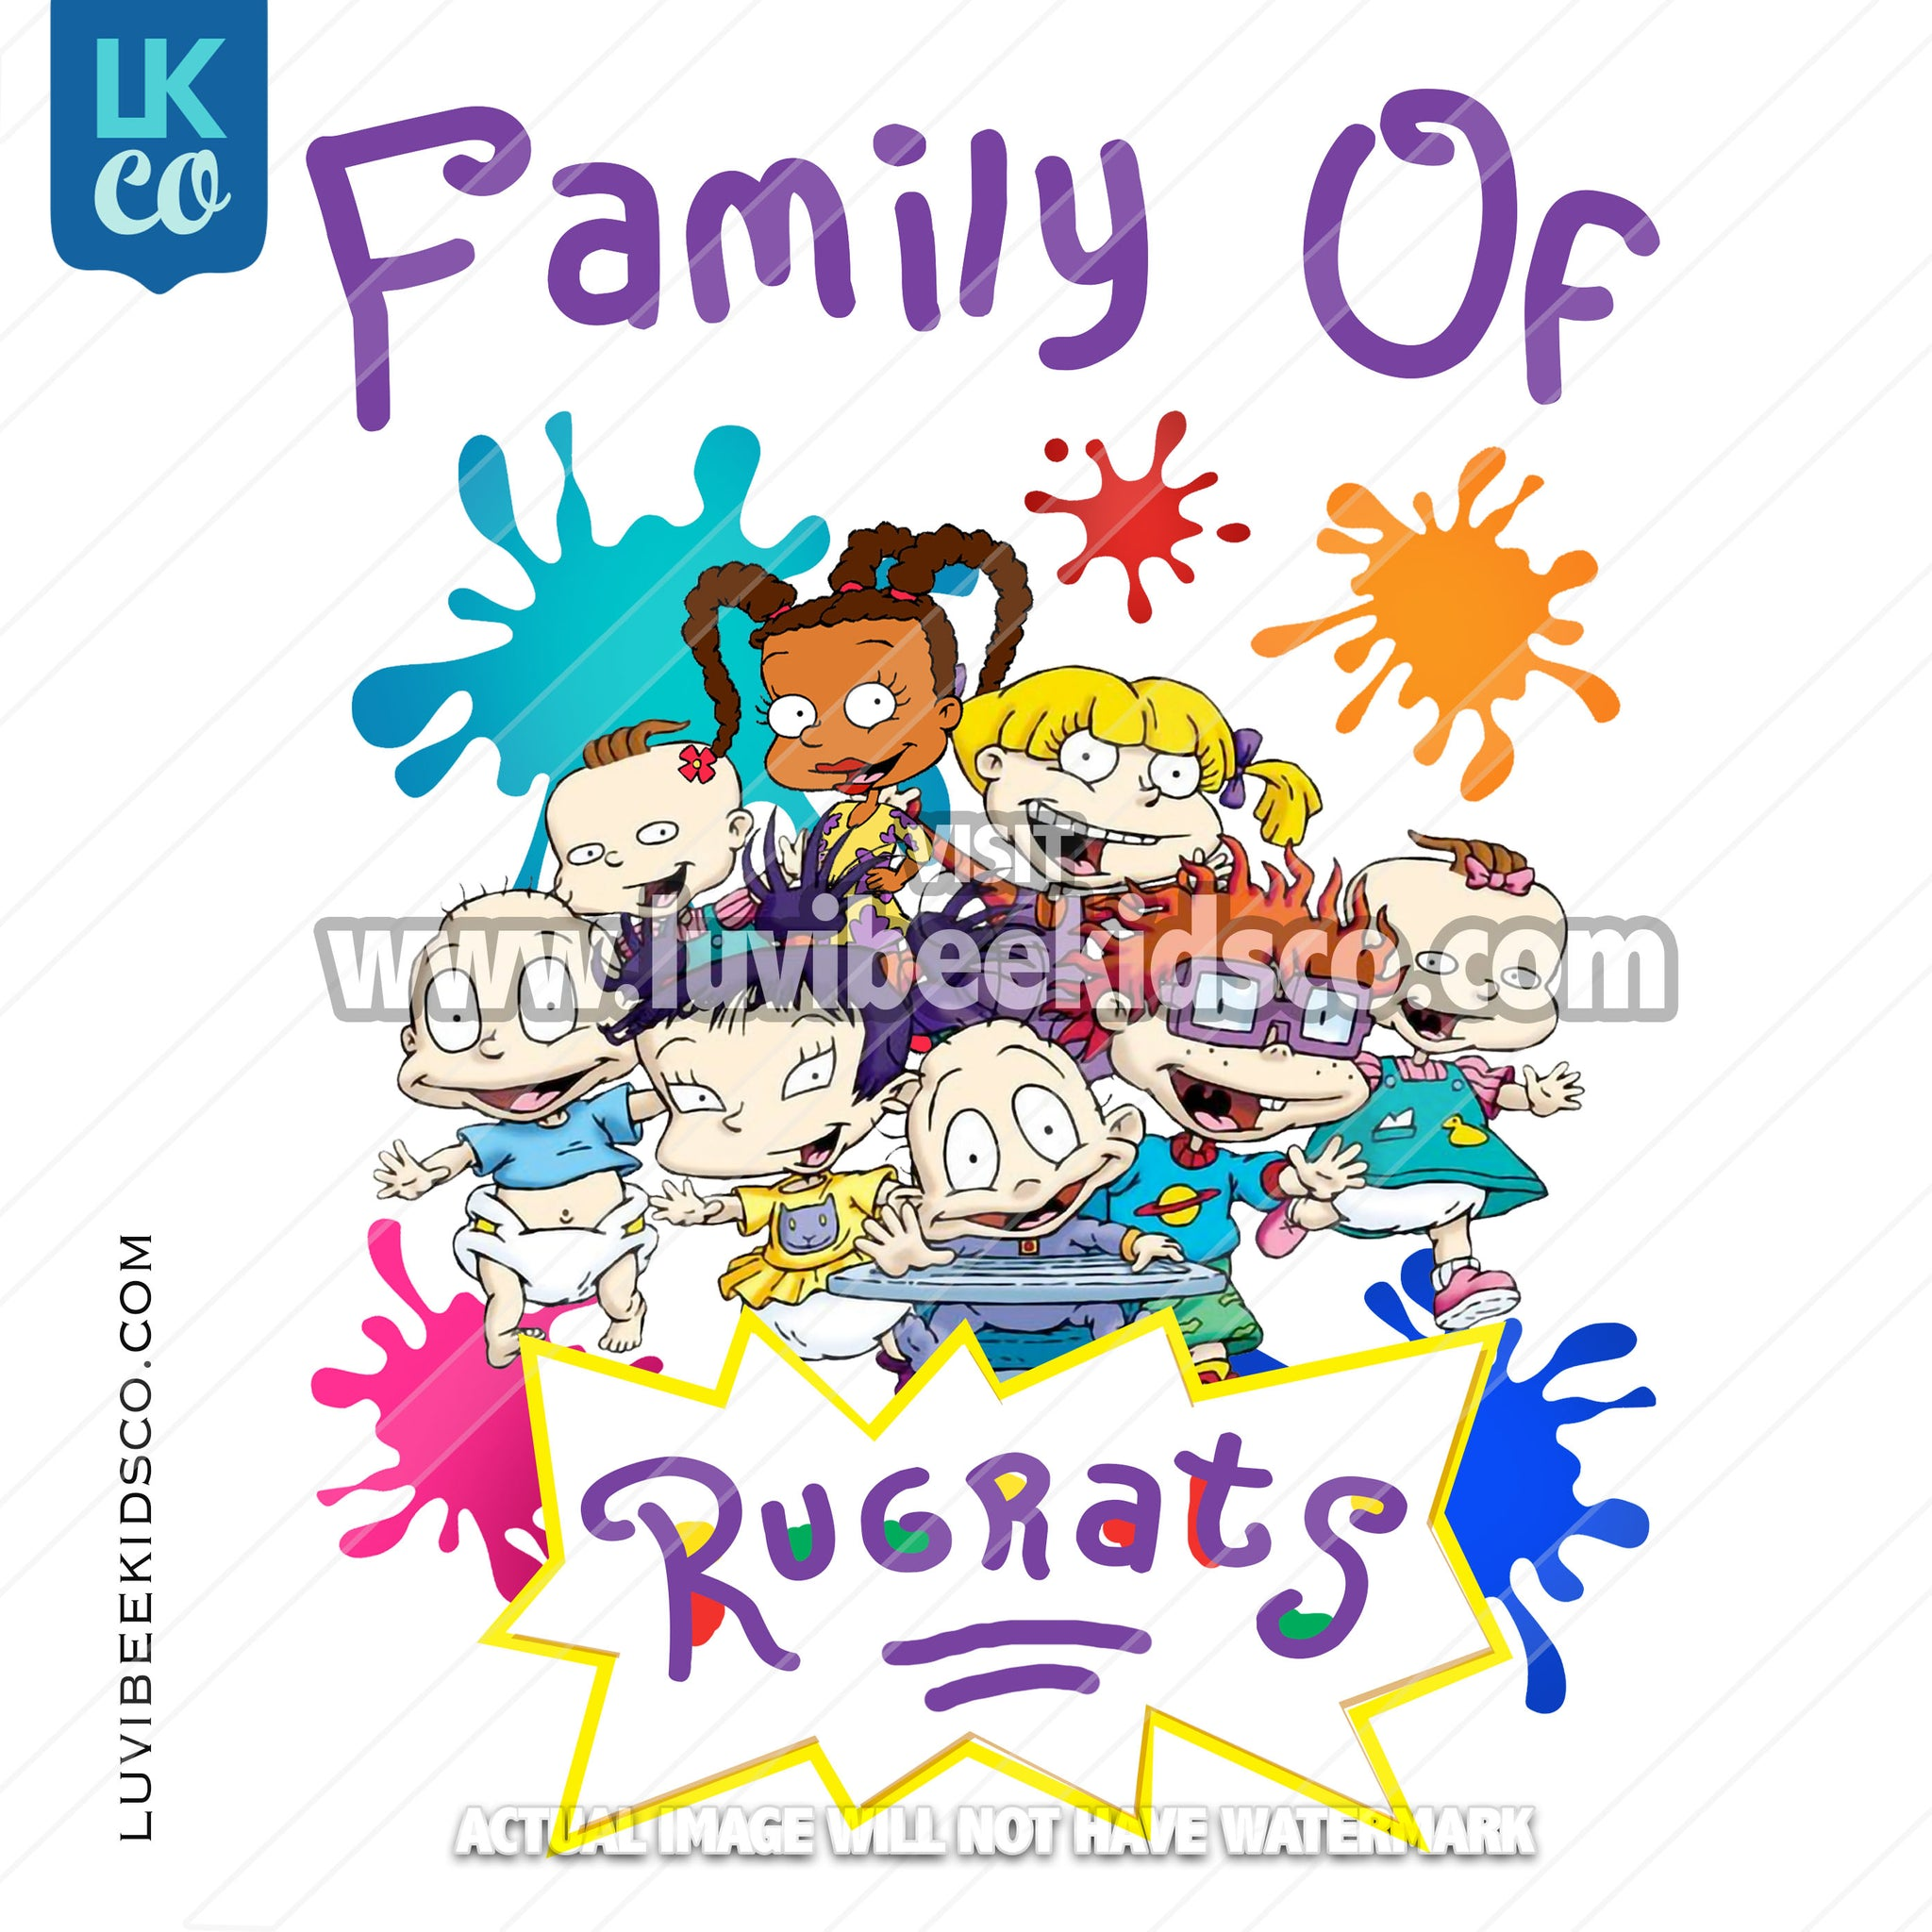 Rugrats Heat Transfer Designs - Add Family Members - Printed Transfer OR Digital File - LuvibeeKidsCo